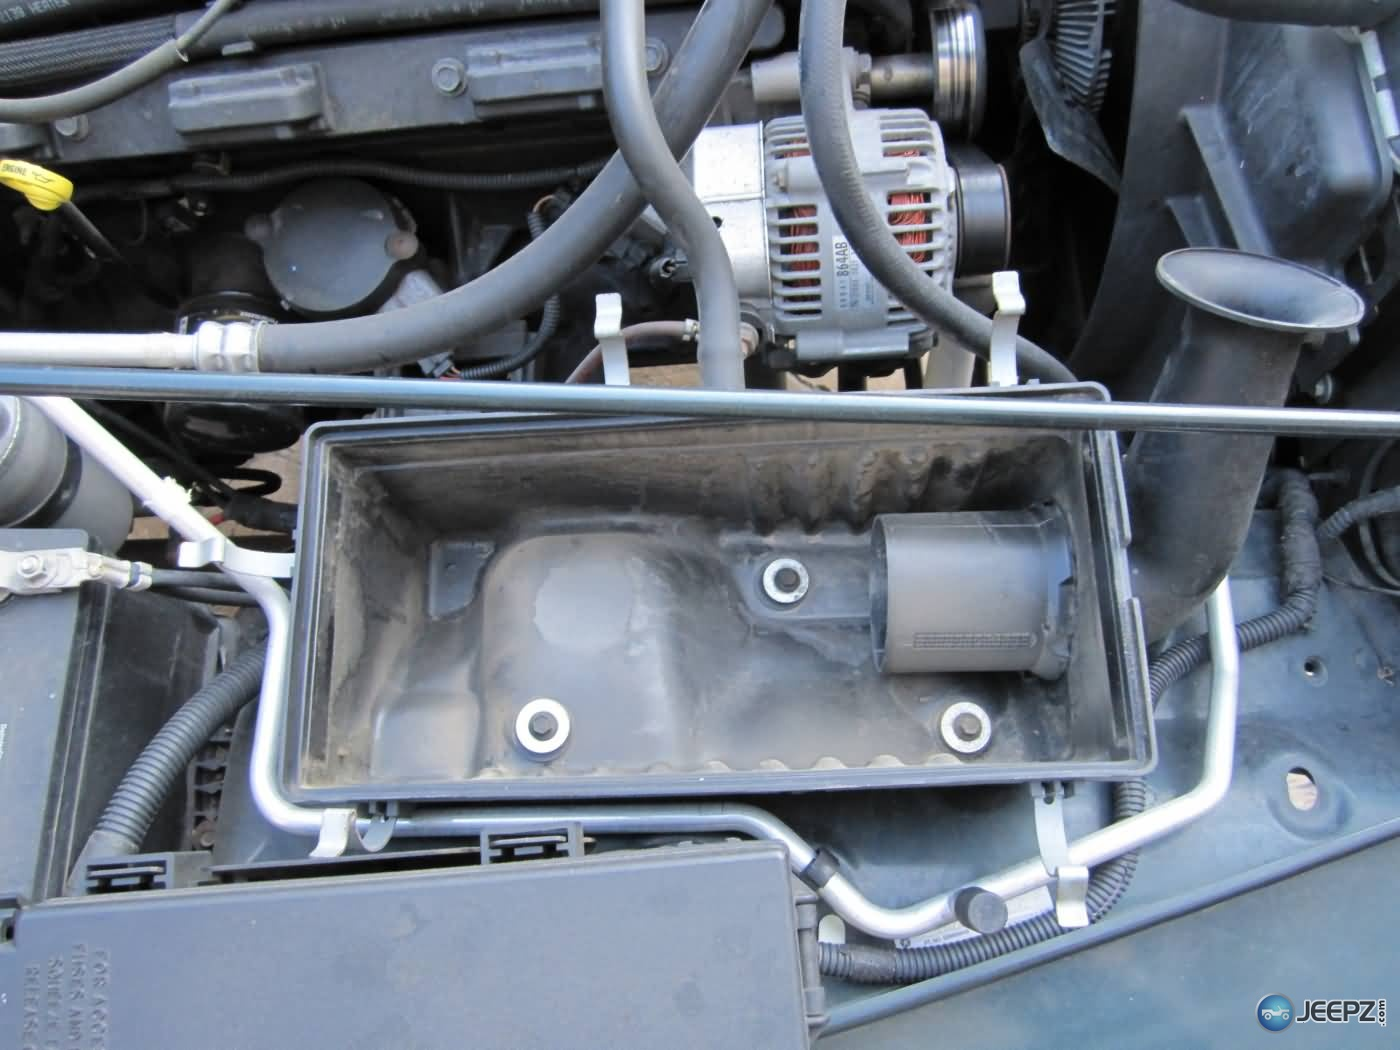 D Install Cold Air Intake Jeep Wrangler Tj Remove Air Box Bolts on Jeep Wrangler Horn Location